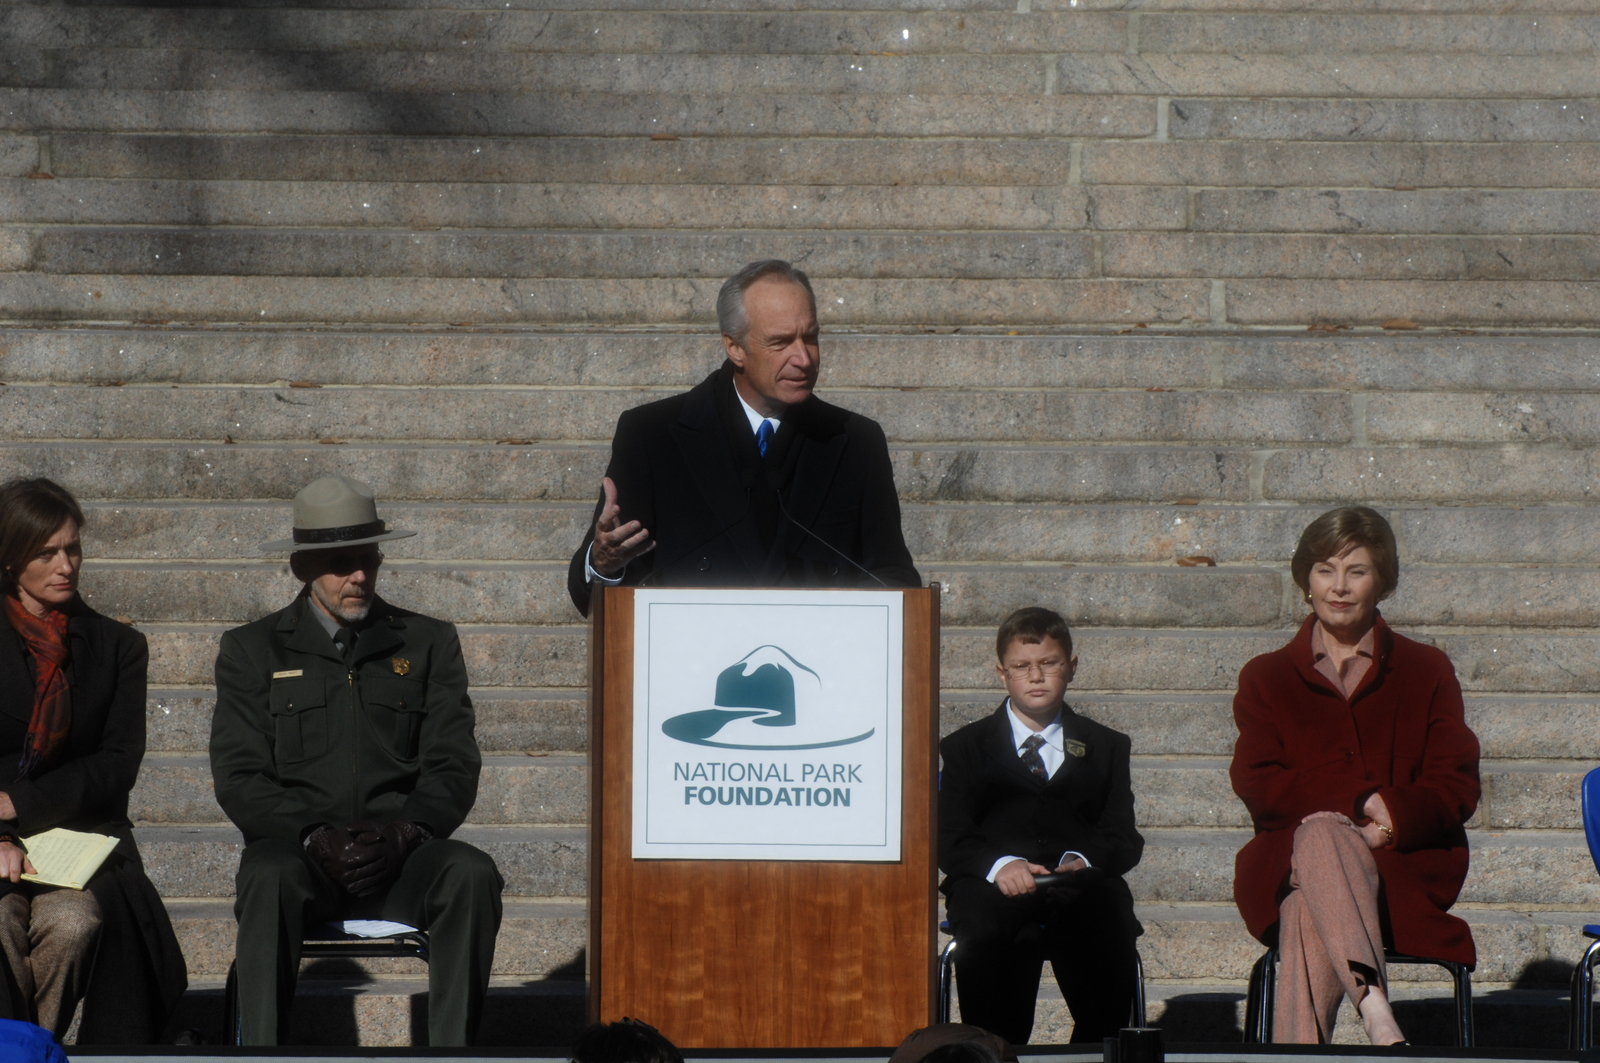 [Assignment: 48-DPA-11-18-08_SOI_K_FLOTUS] Visit of Secretary Dirk Kempthorne to the Abraham Lincoln Birthplace National Historic Site in Hodgenville, Kentucky, where he joined First Lady Laura Bush, [Historic Site Superintendent Keith Pruitt, and Libby O'Connell, Chief Historian of A and E Television's History Channel, for tours, remarks, interactions with National Park Service staff and visitors] [48-DPA-11-18-08_SOI_K_FLOTUS_IOD_8062.JPG]